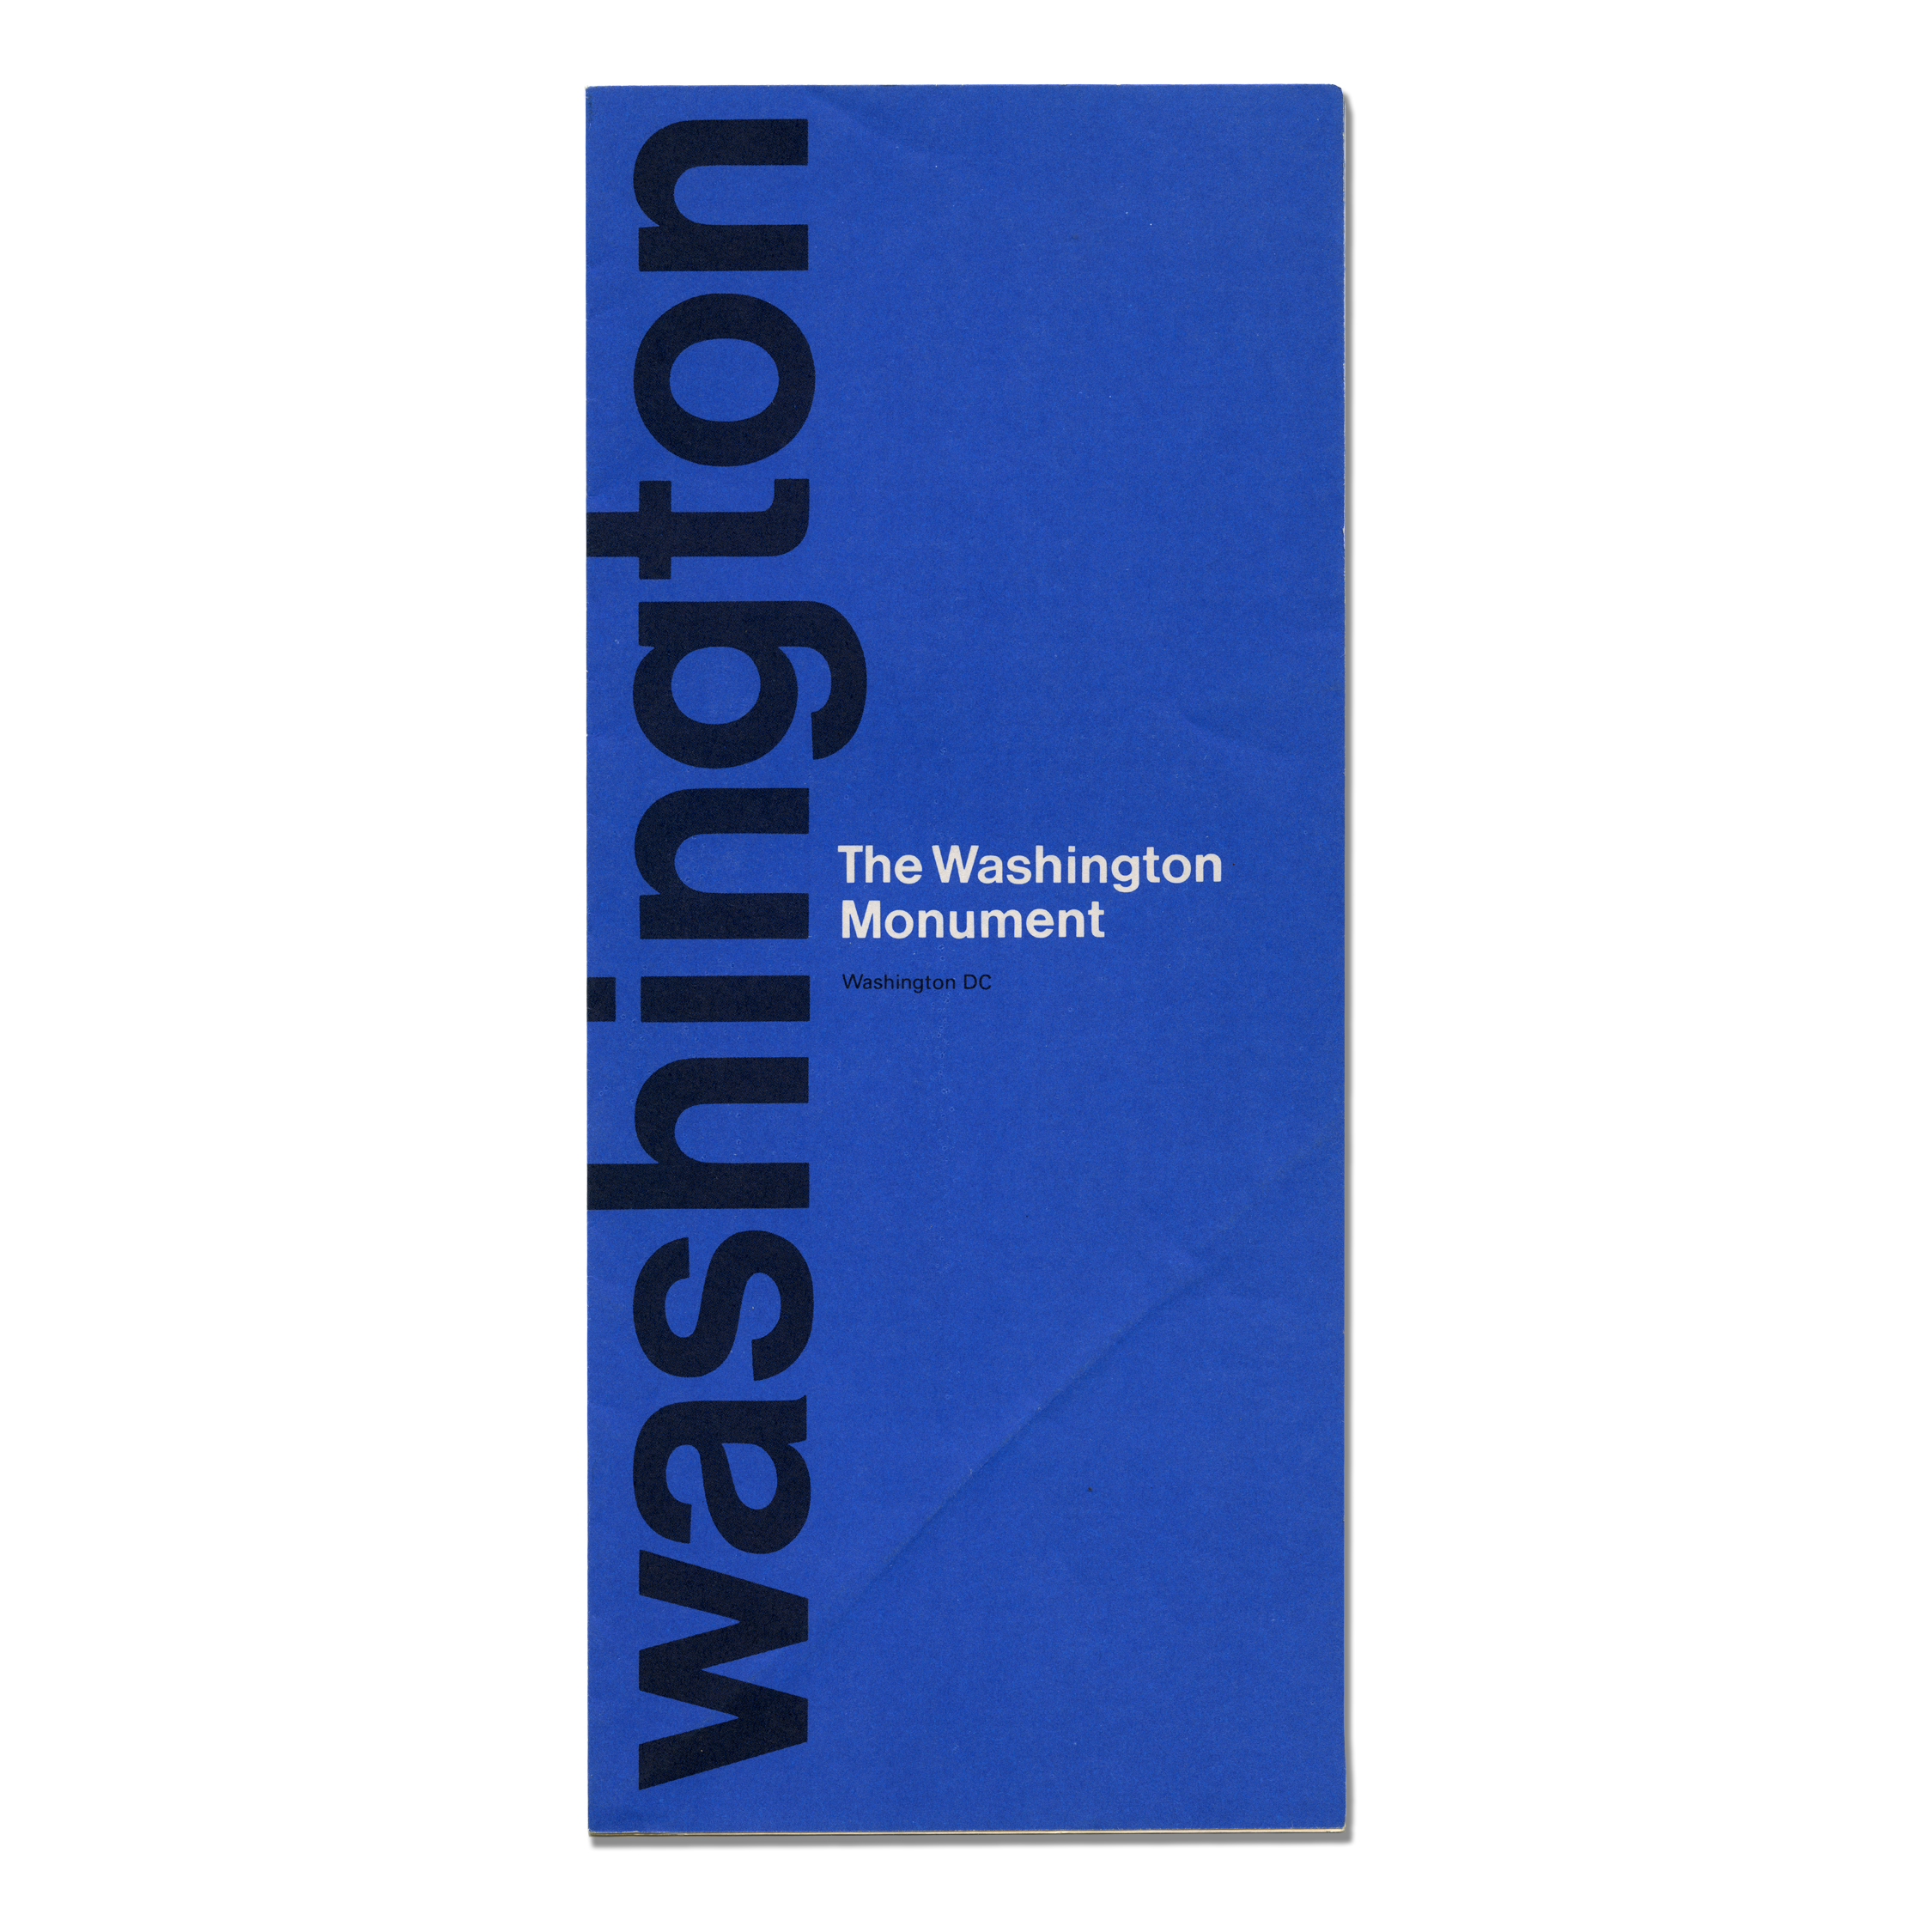 1973_washington_monument_brochure.jpg